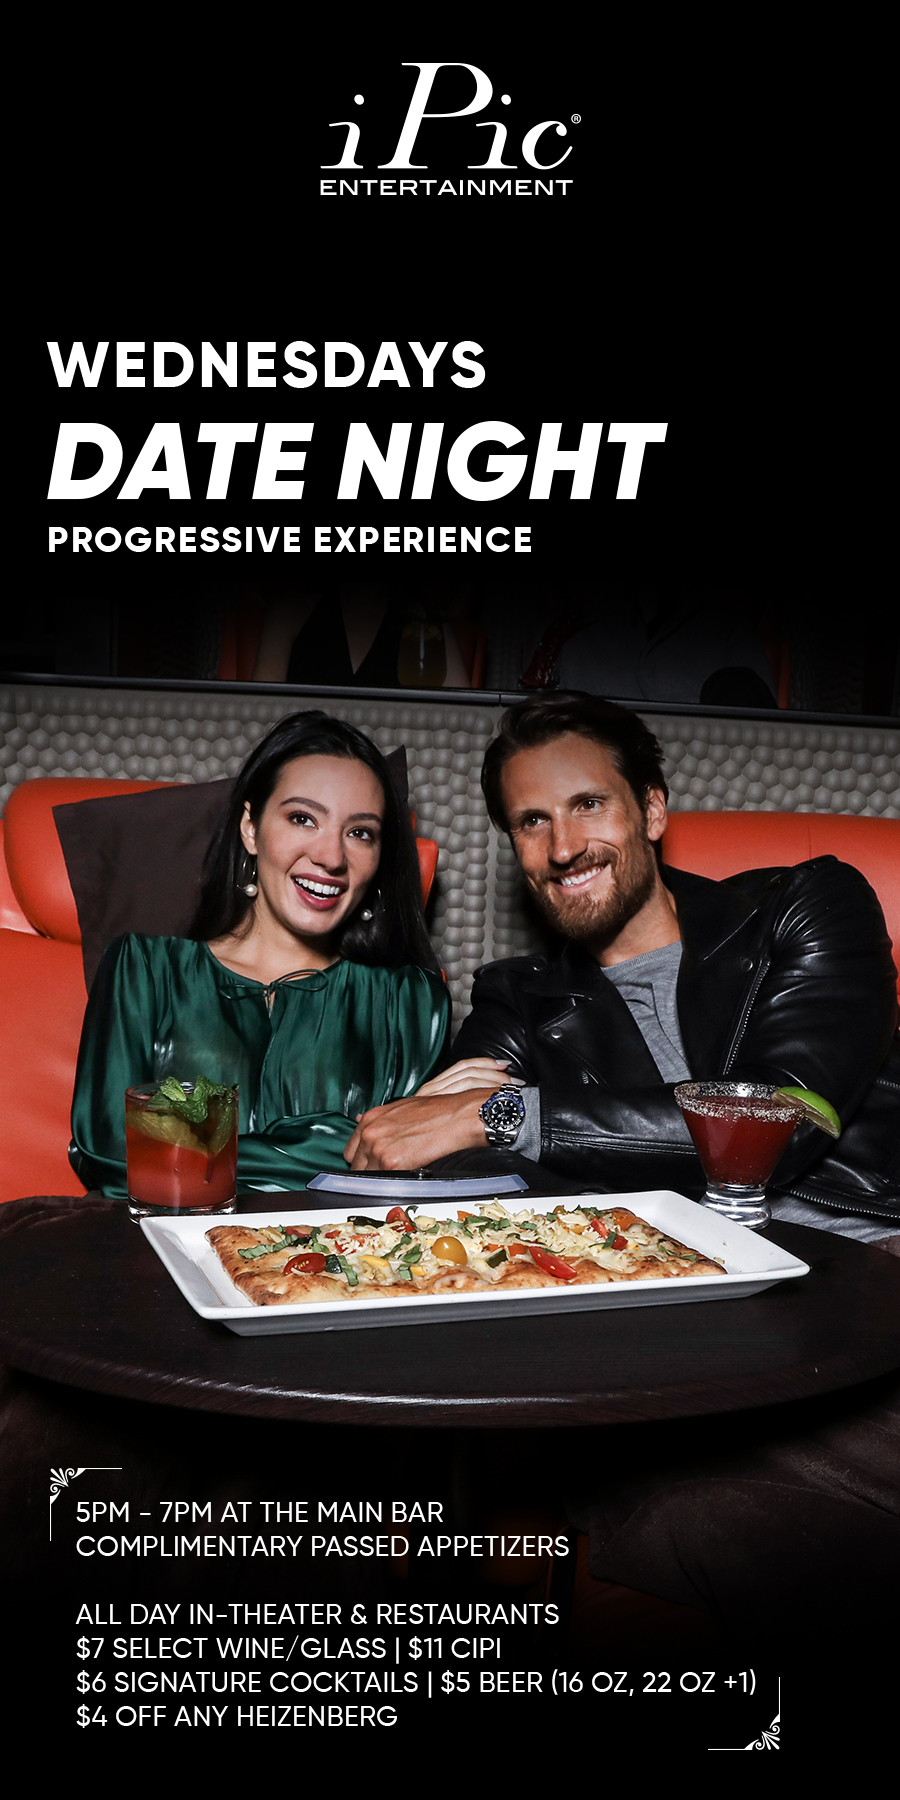 13053_IPIC_THG_WeeklyActivations_LineUp_DateNight_LandingPage_900x1800.jpg